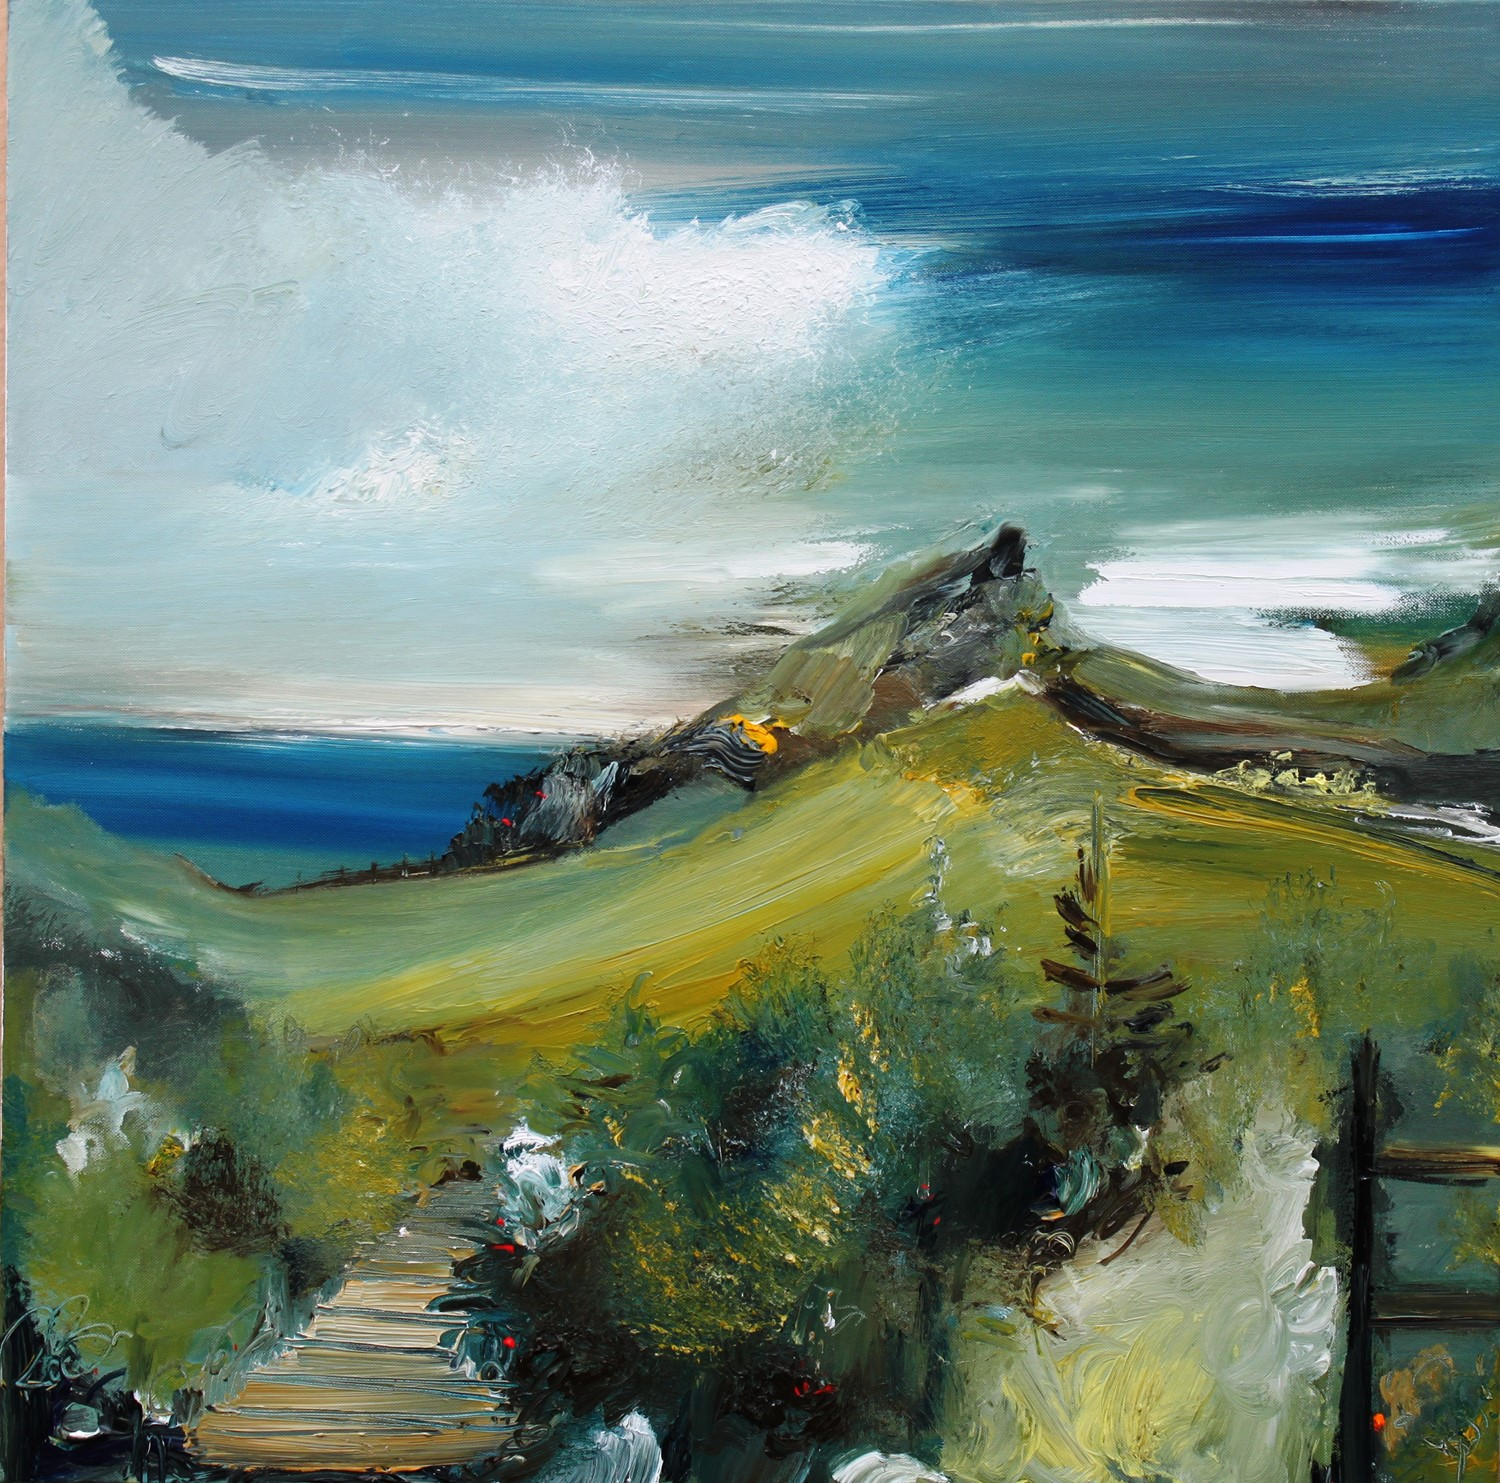 'Summer Hiking' by artist Rosanne Barr